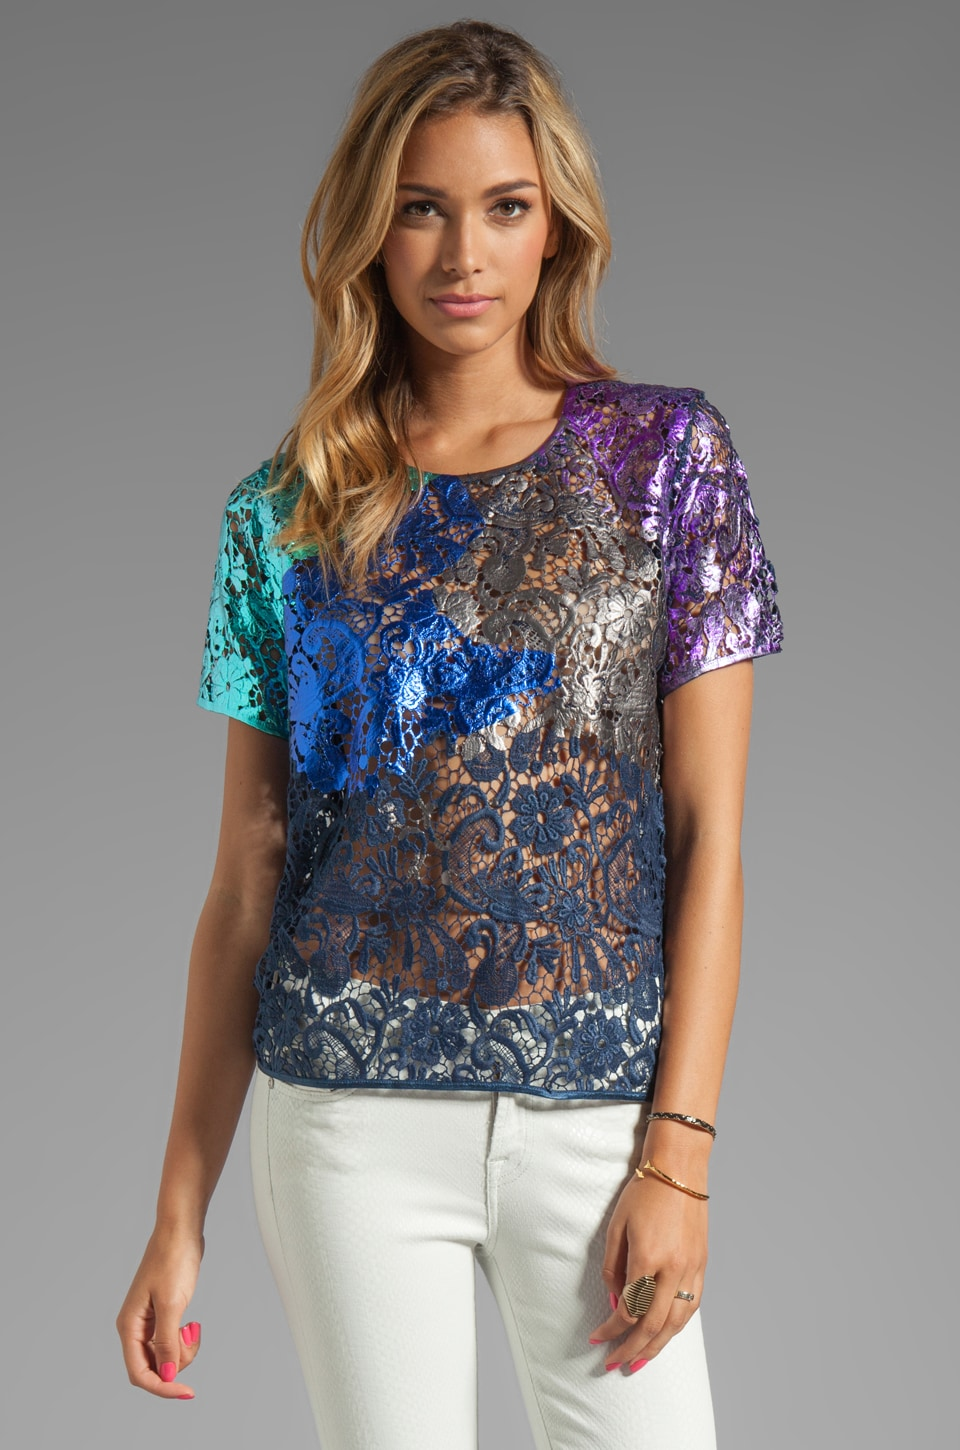 Cynthia Rowley Foiled Lace T-Shirt Top in Navy